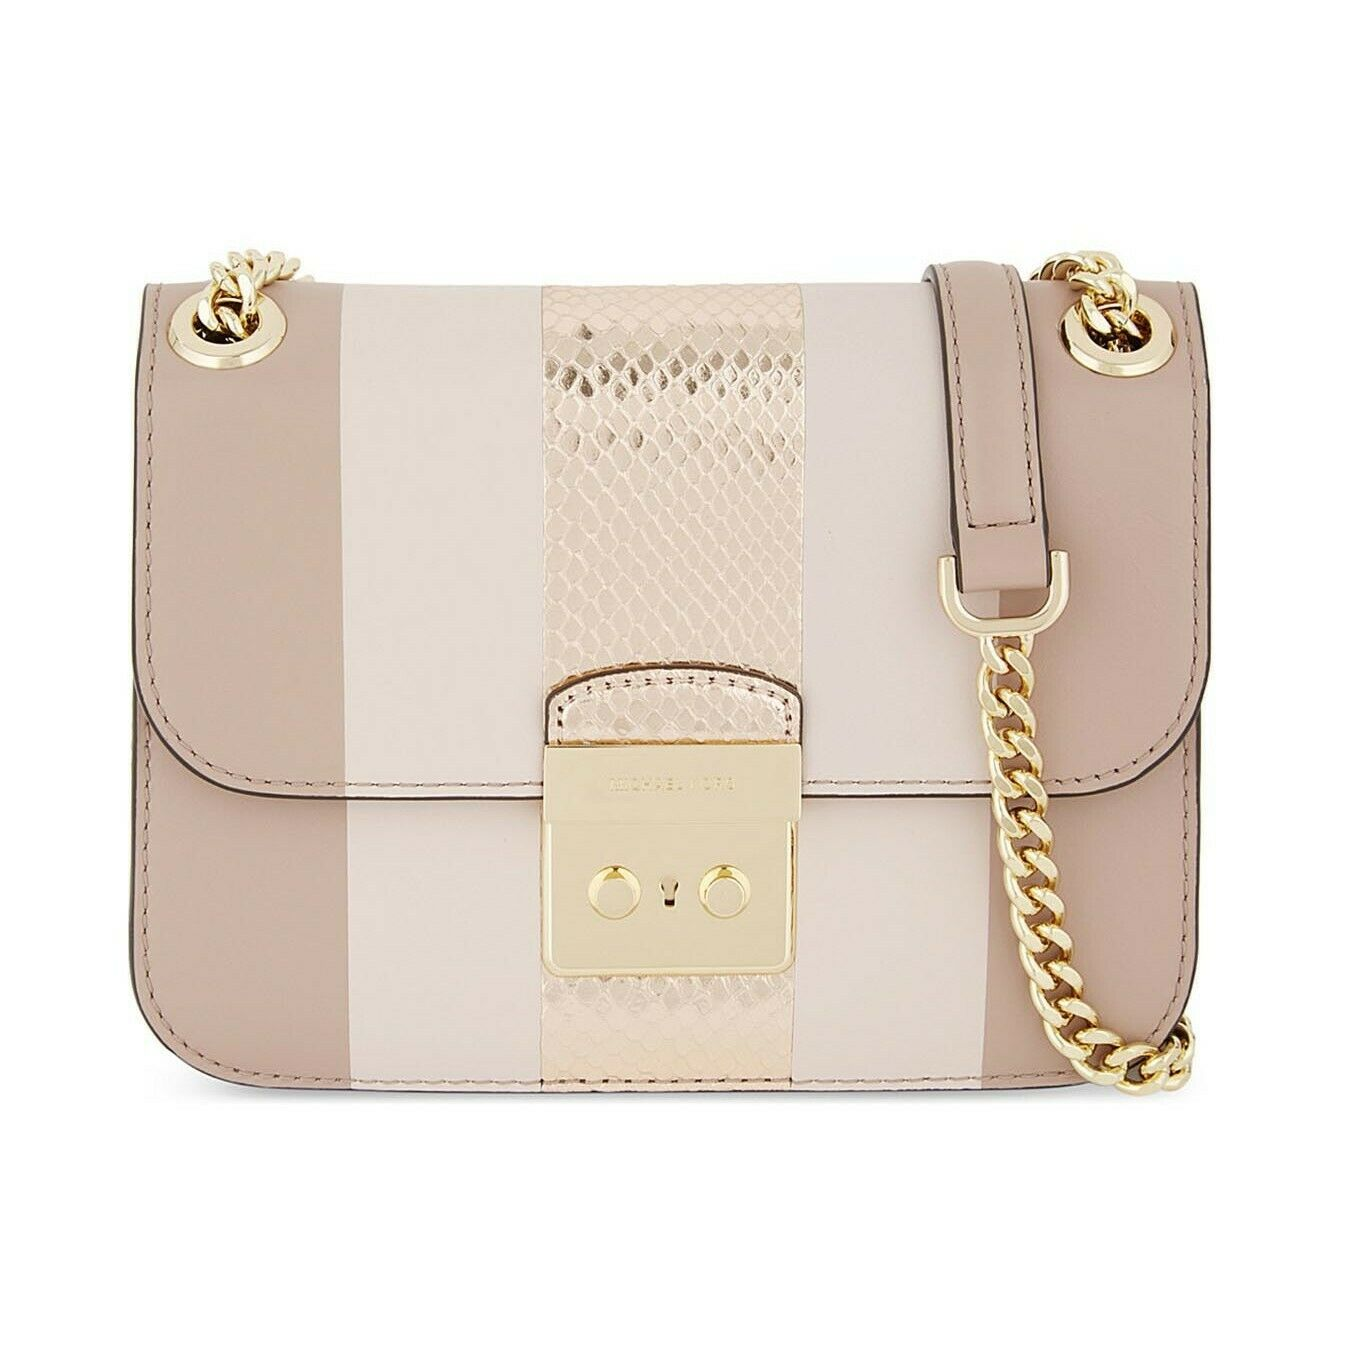 0561ed7abca6 57. 57. Previous. NWT MICHAEL KORS Sloan Stripe Crossbody Gold Chain Bag  Purse Pink 30S7GIKL2M NEW